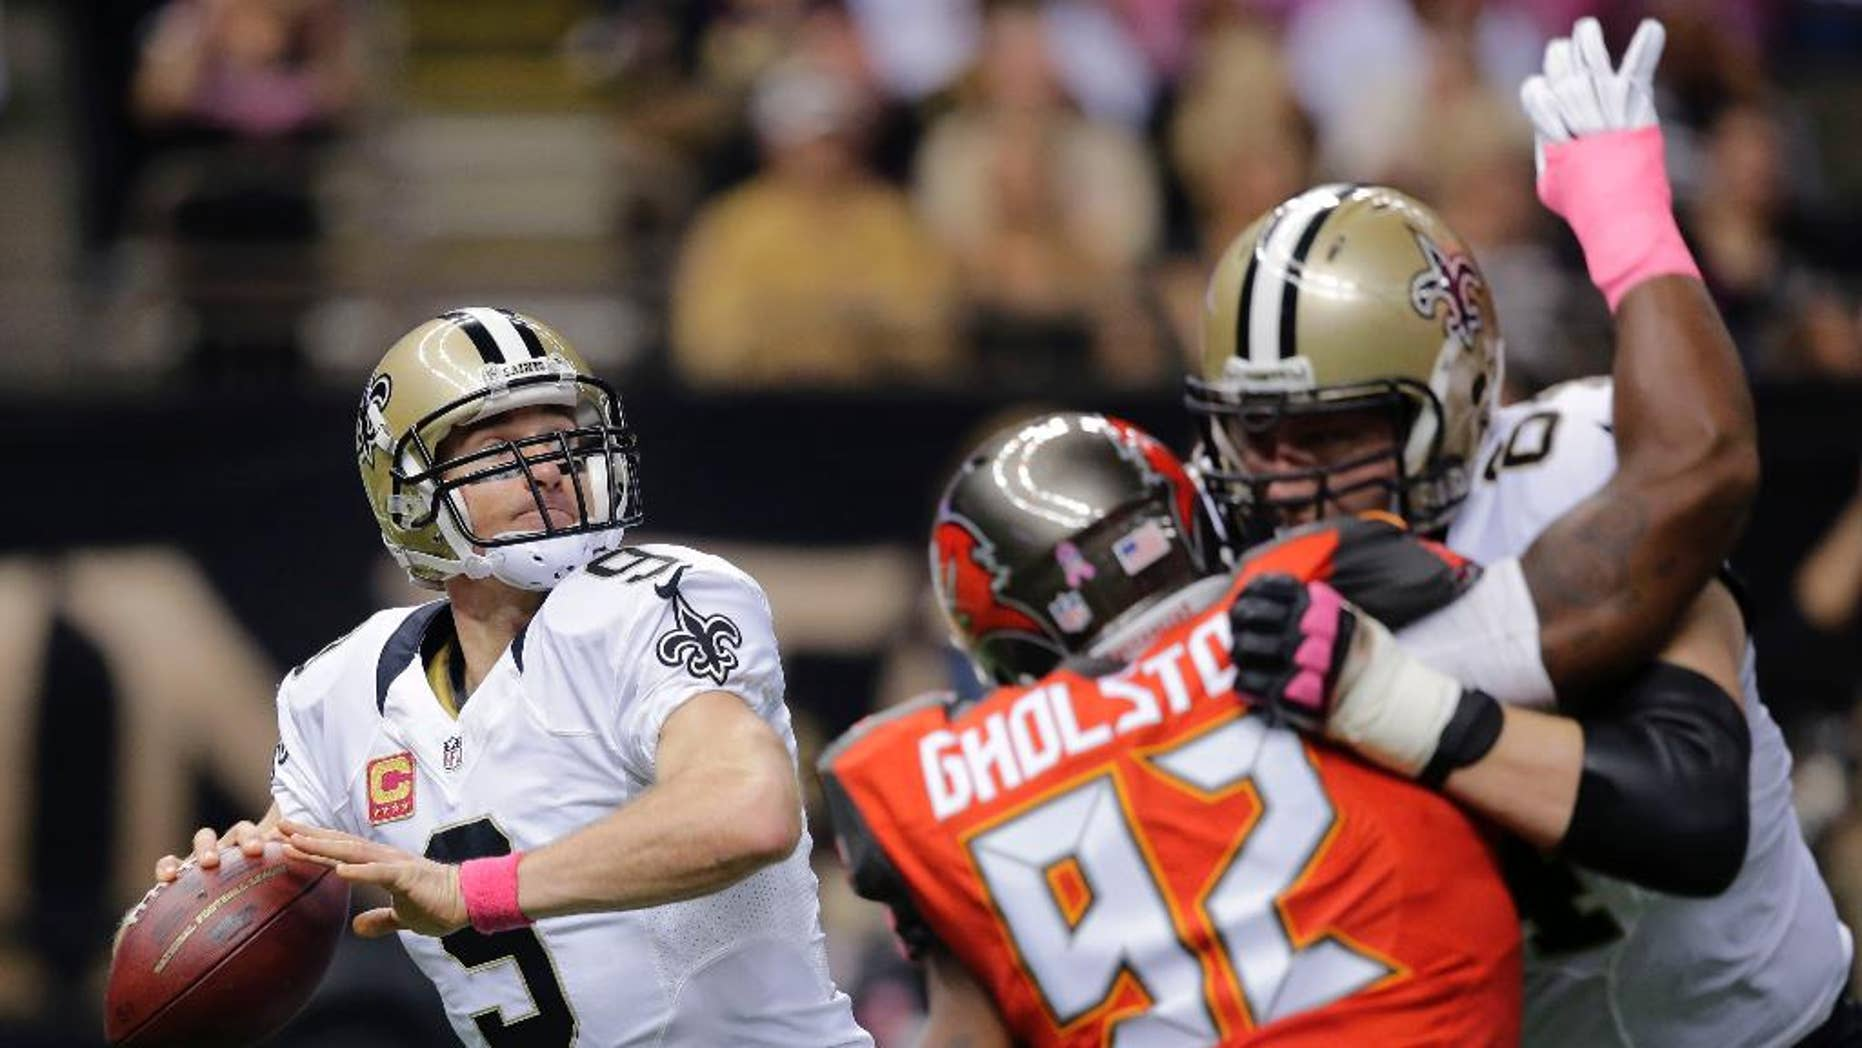 New Orleans Saints quarterback Drew Brees (9) drops back to pass under pressure from Tampa Bay Buccaneers defensive end William Gholston (92) in the first half of an NFL football game in New Orleans, Sunday, Oct. 5, 2014. (AP Photo/Bill Haber)